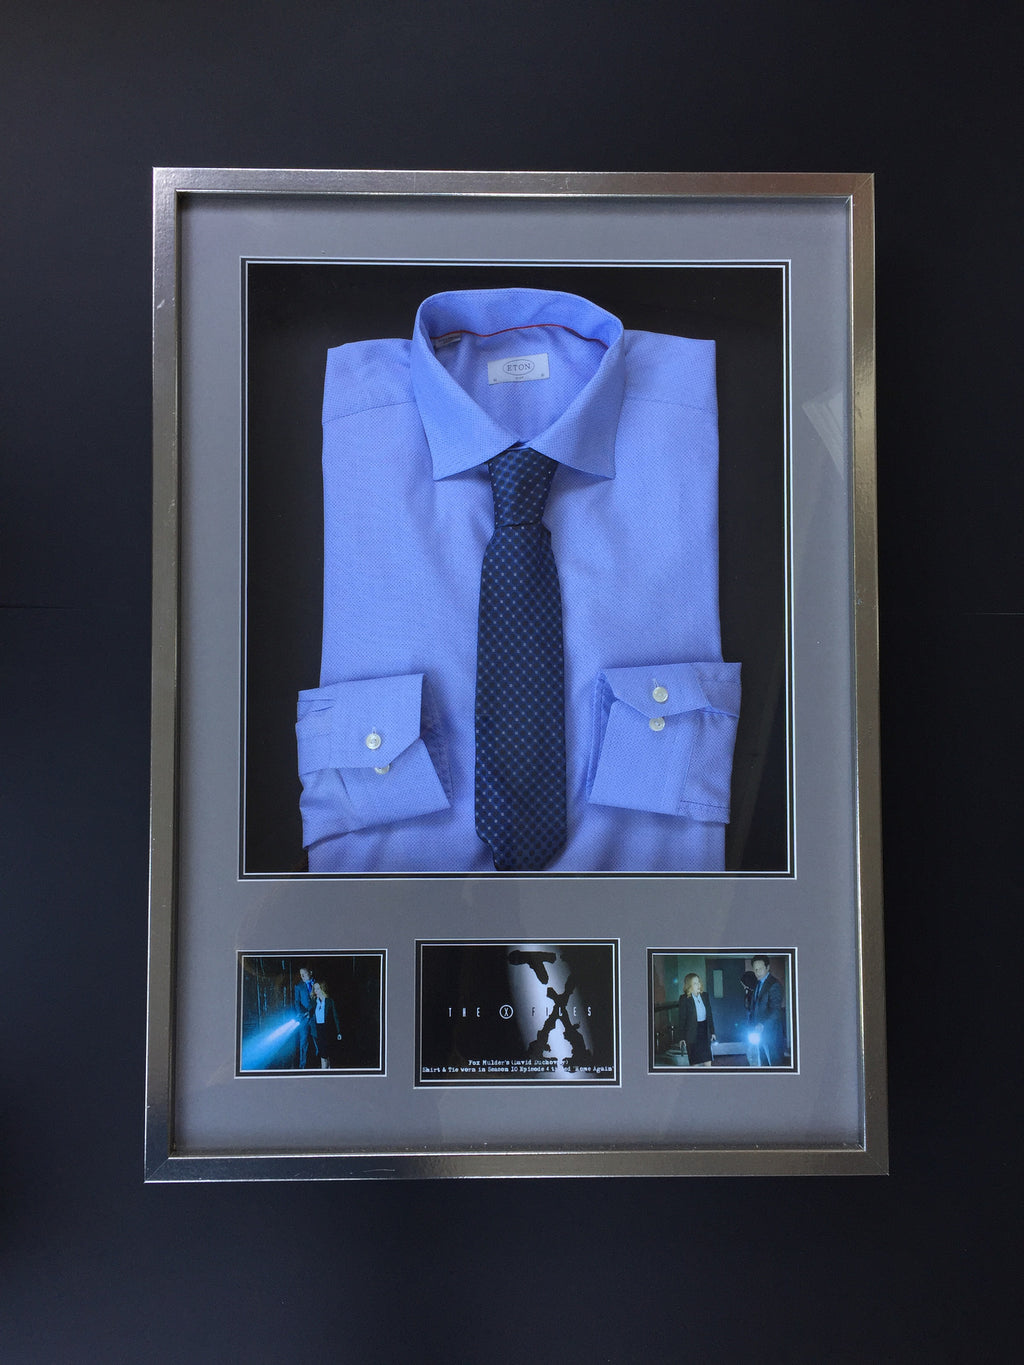 The X Files (TV) - Fox Mulder's Shirt & Tie